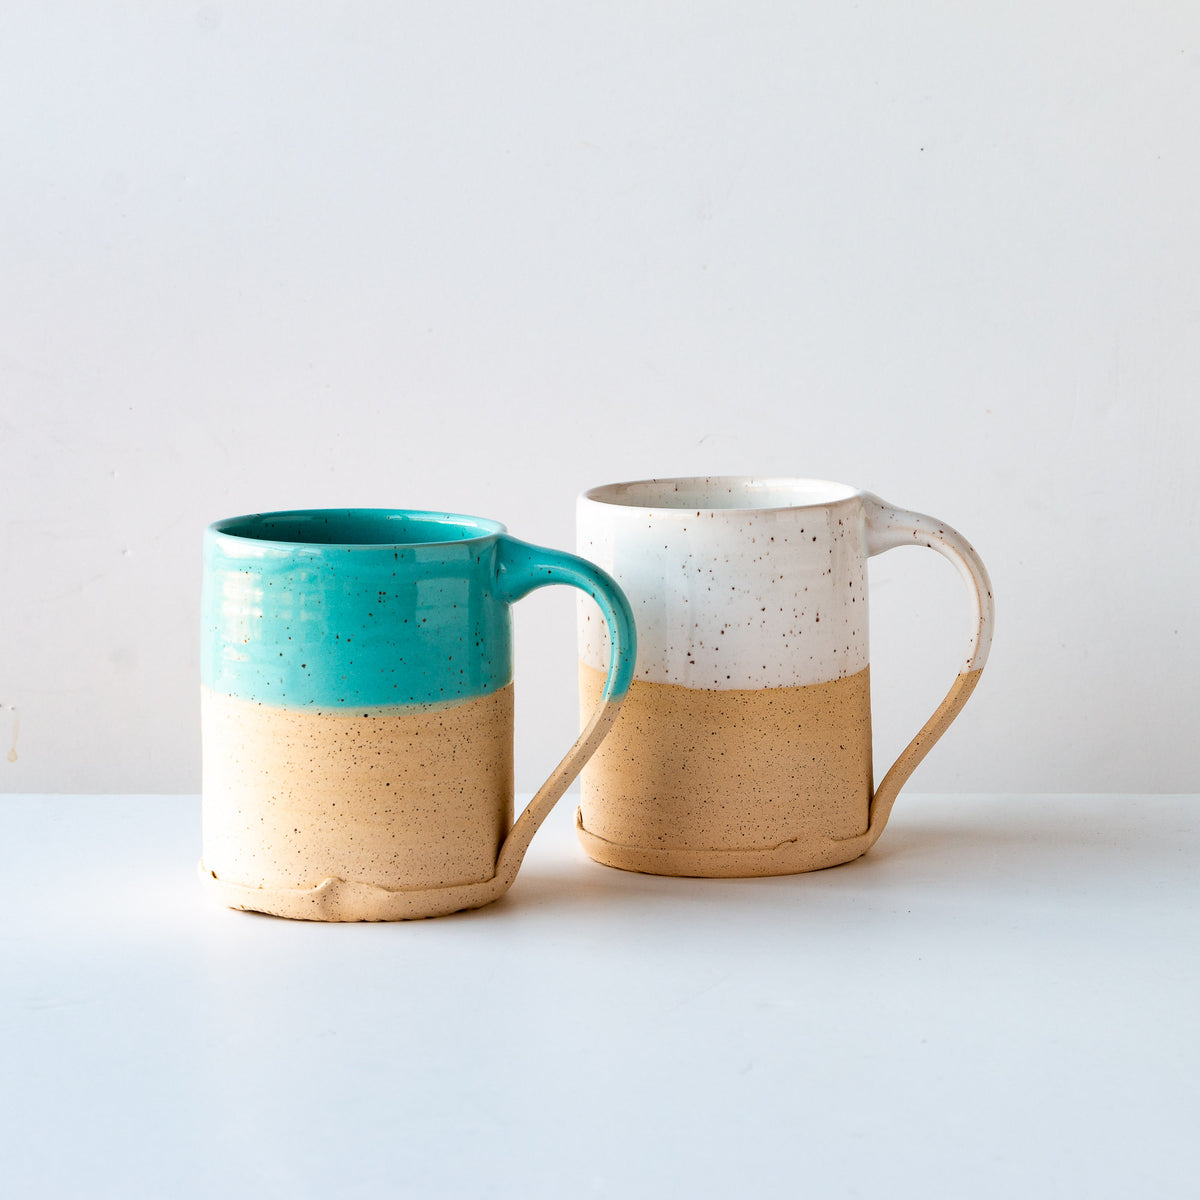 White Glaze & Turquoise Glaze - Two Handcrafted Speckled Stoneware Large Mugs - Sold by Chic & Basta